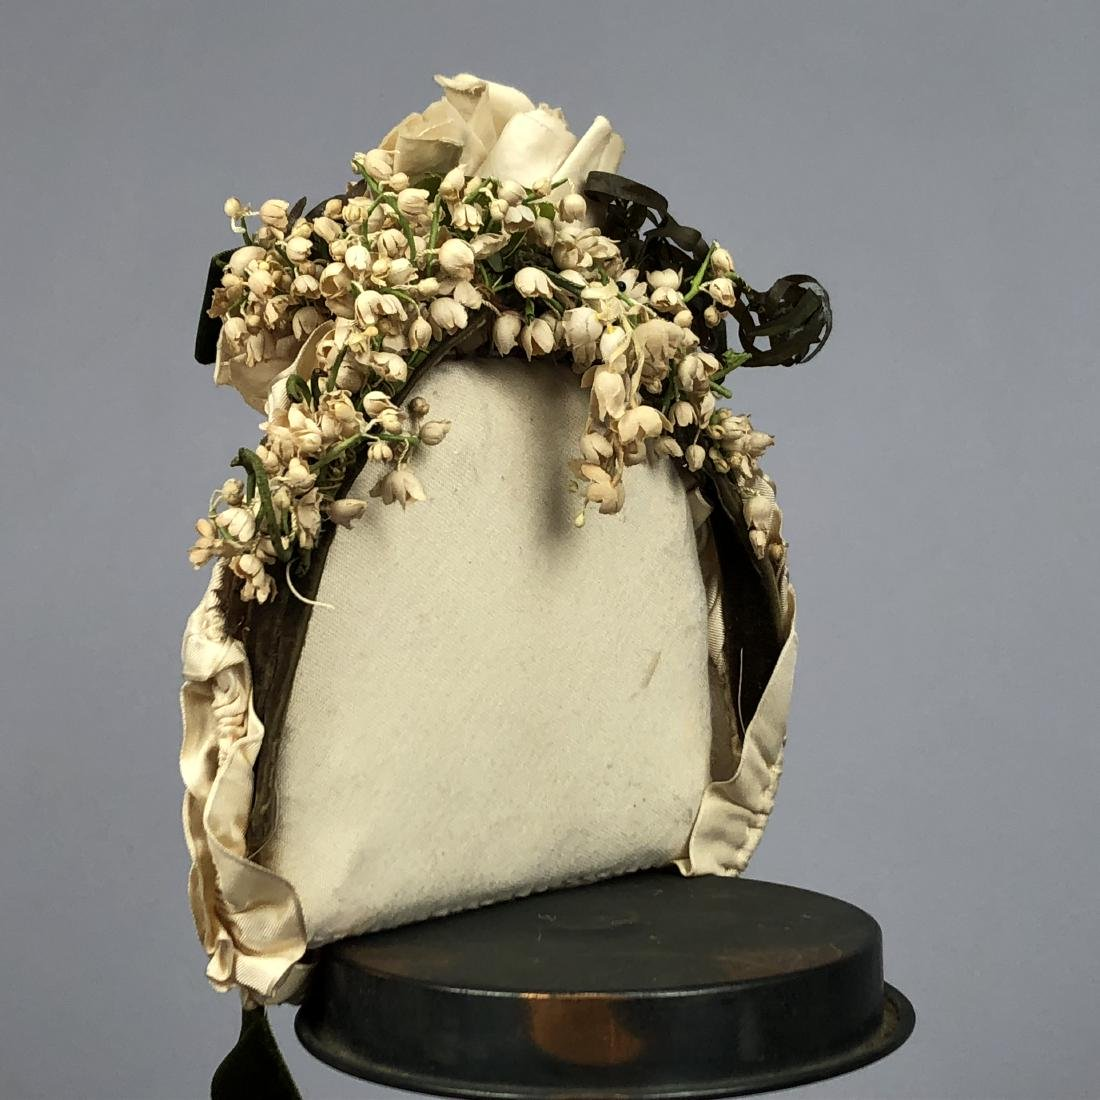 TWO WIRED BONNETS worn by JULIA BUTTERFIELD, 1890 - 3